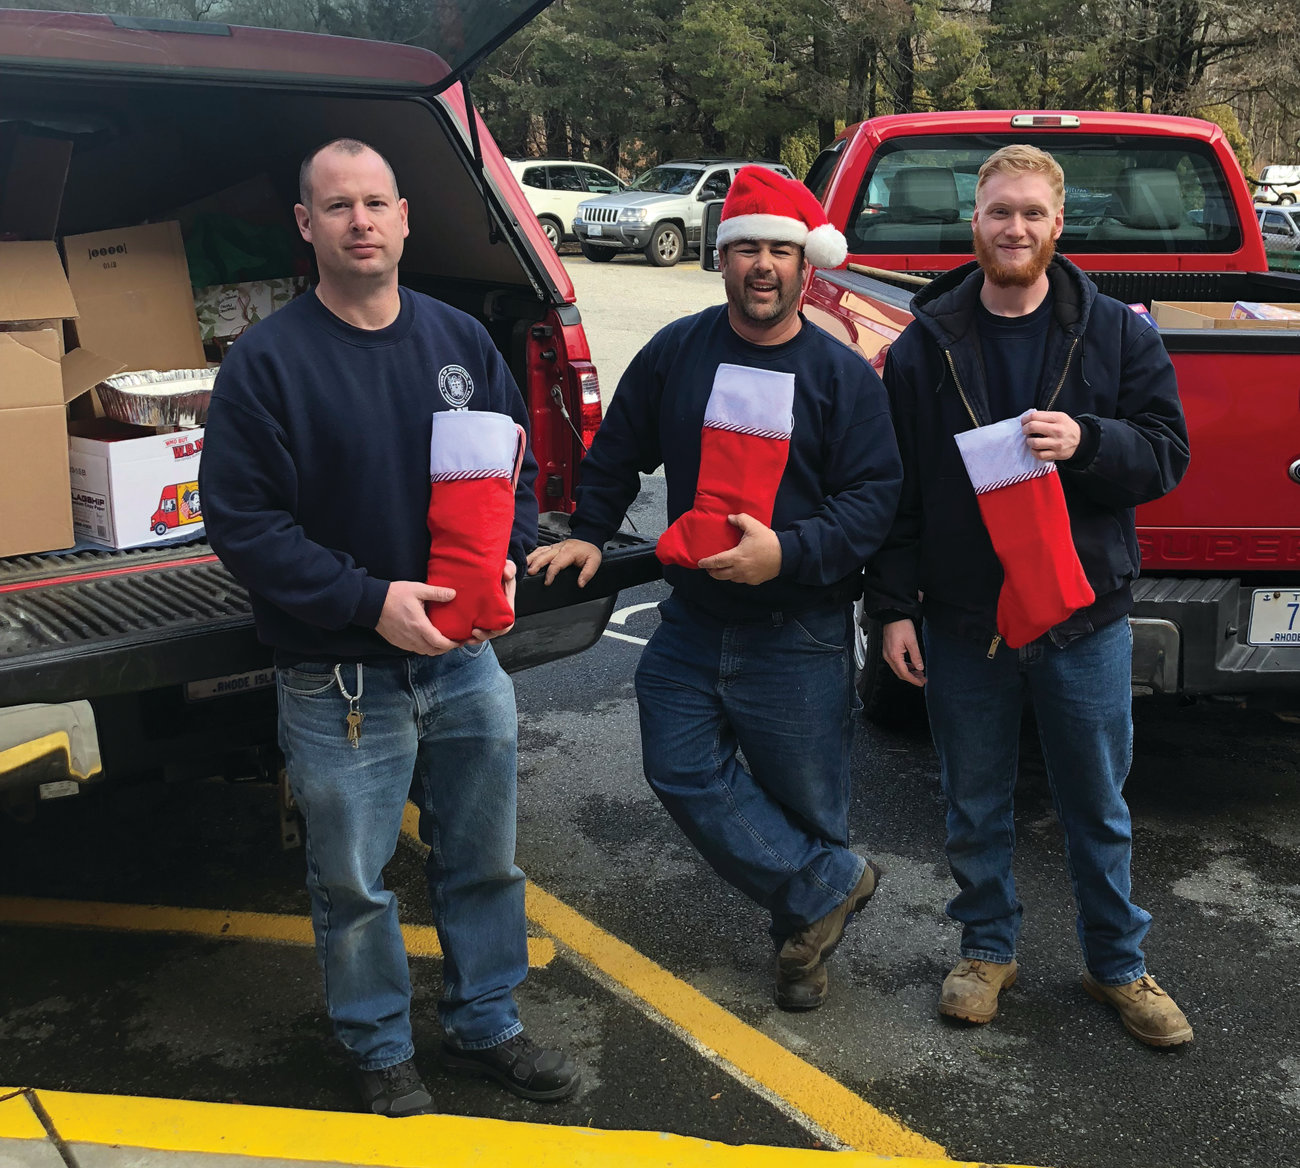 HELPING HANDS: These Johnston employees served as special Santa's helpers Monday to deliver the 80-plus gifts that Mayor Joseph Polisena's Elves collected during their annual Adopt-A-Family program.